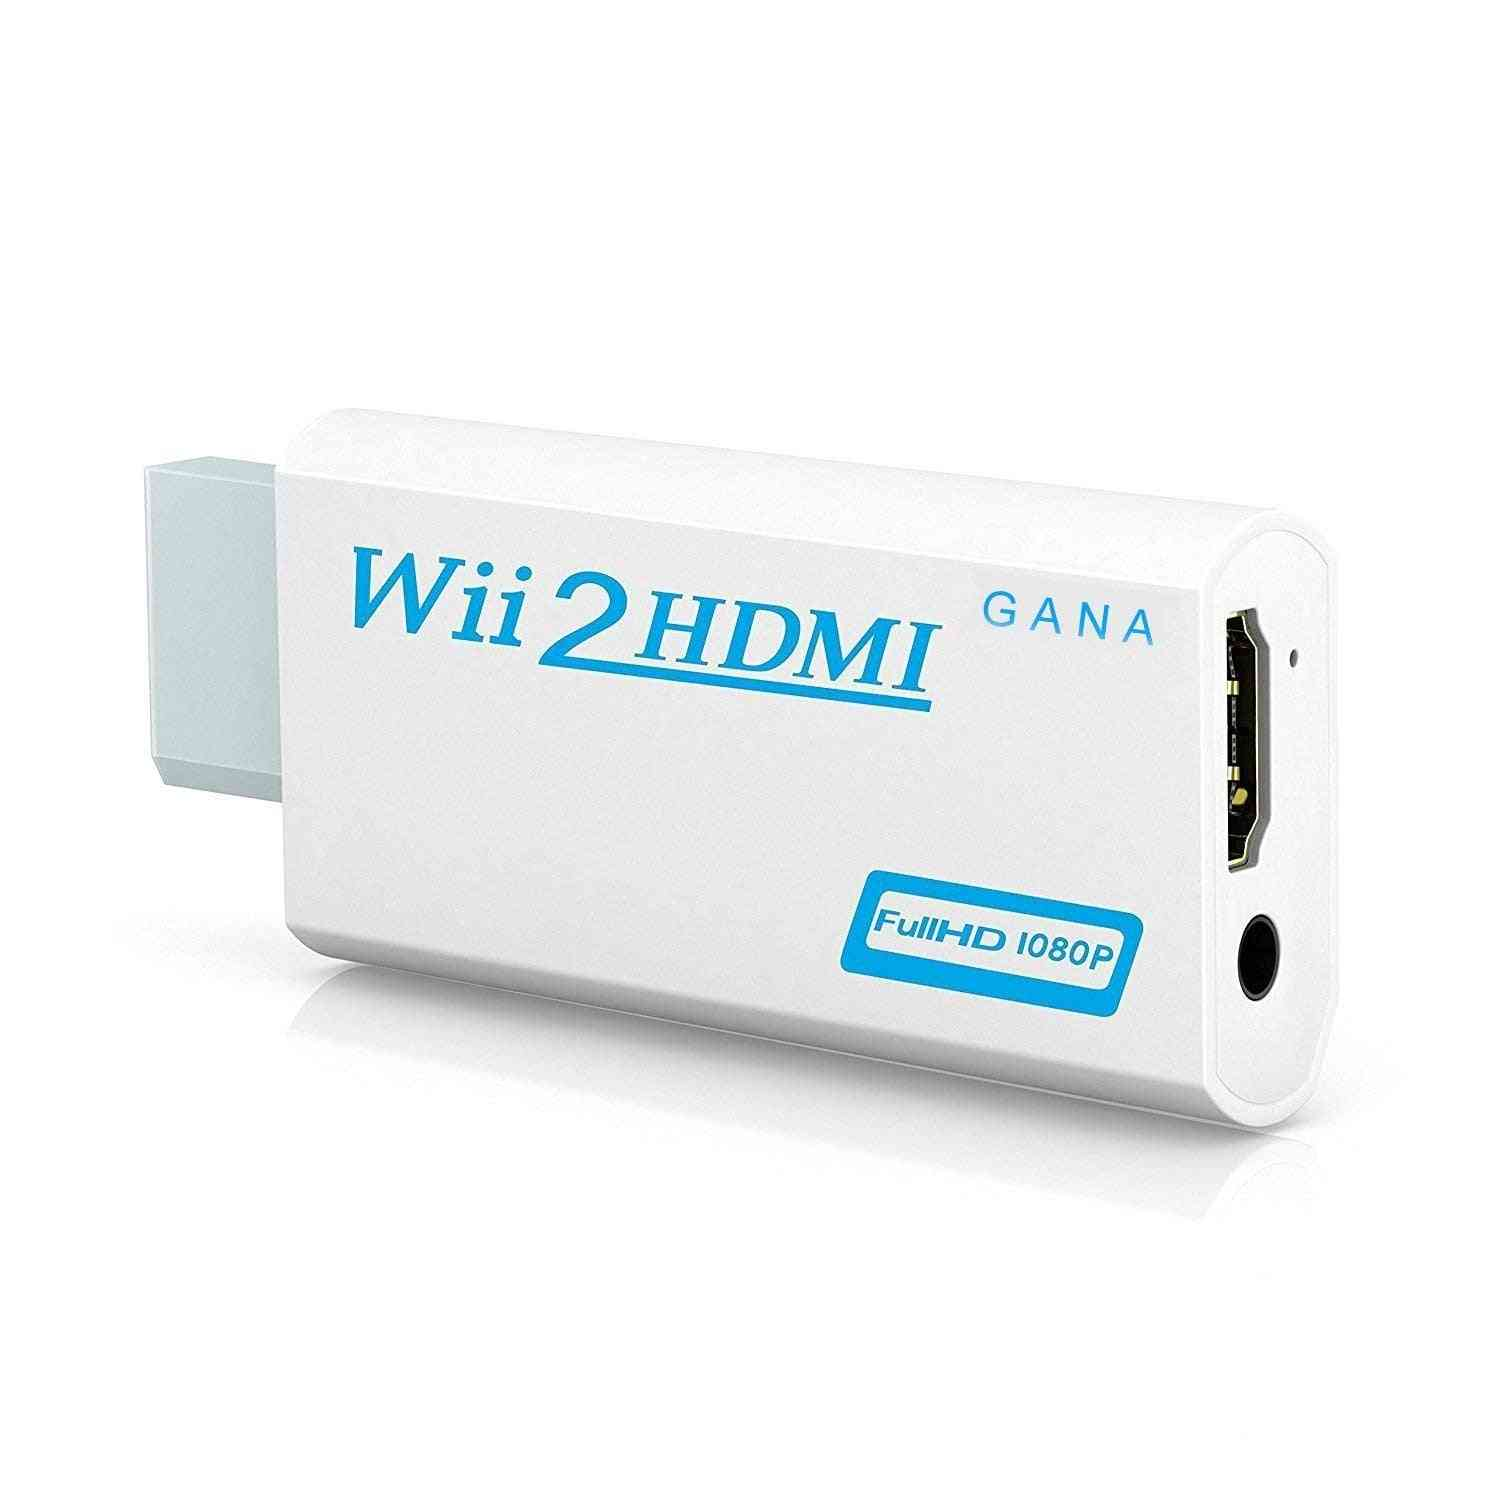 Full Hd 1080p, Wii To Hdmi Converter Adapter